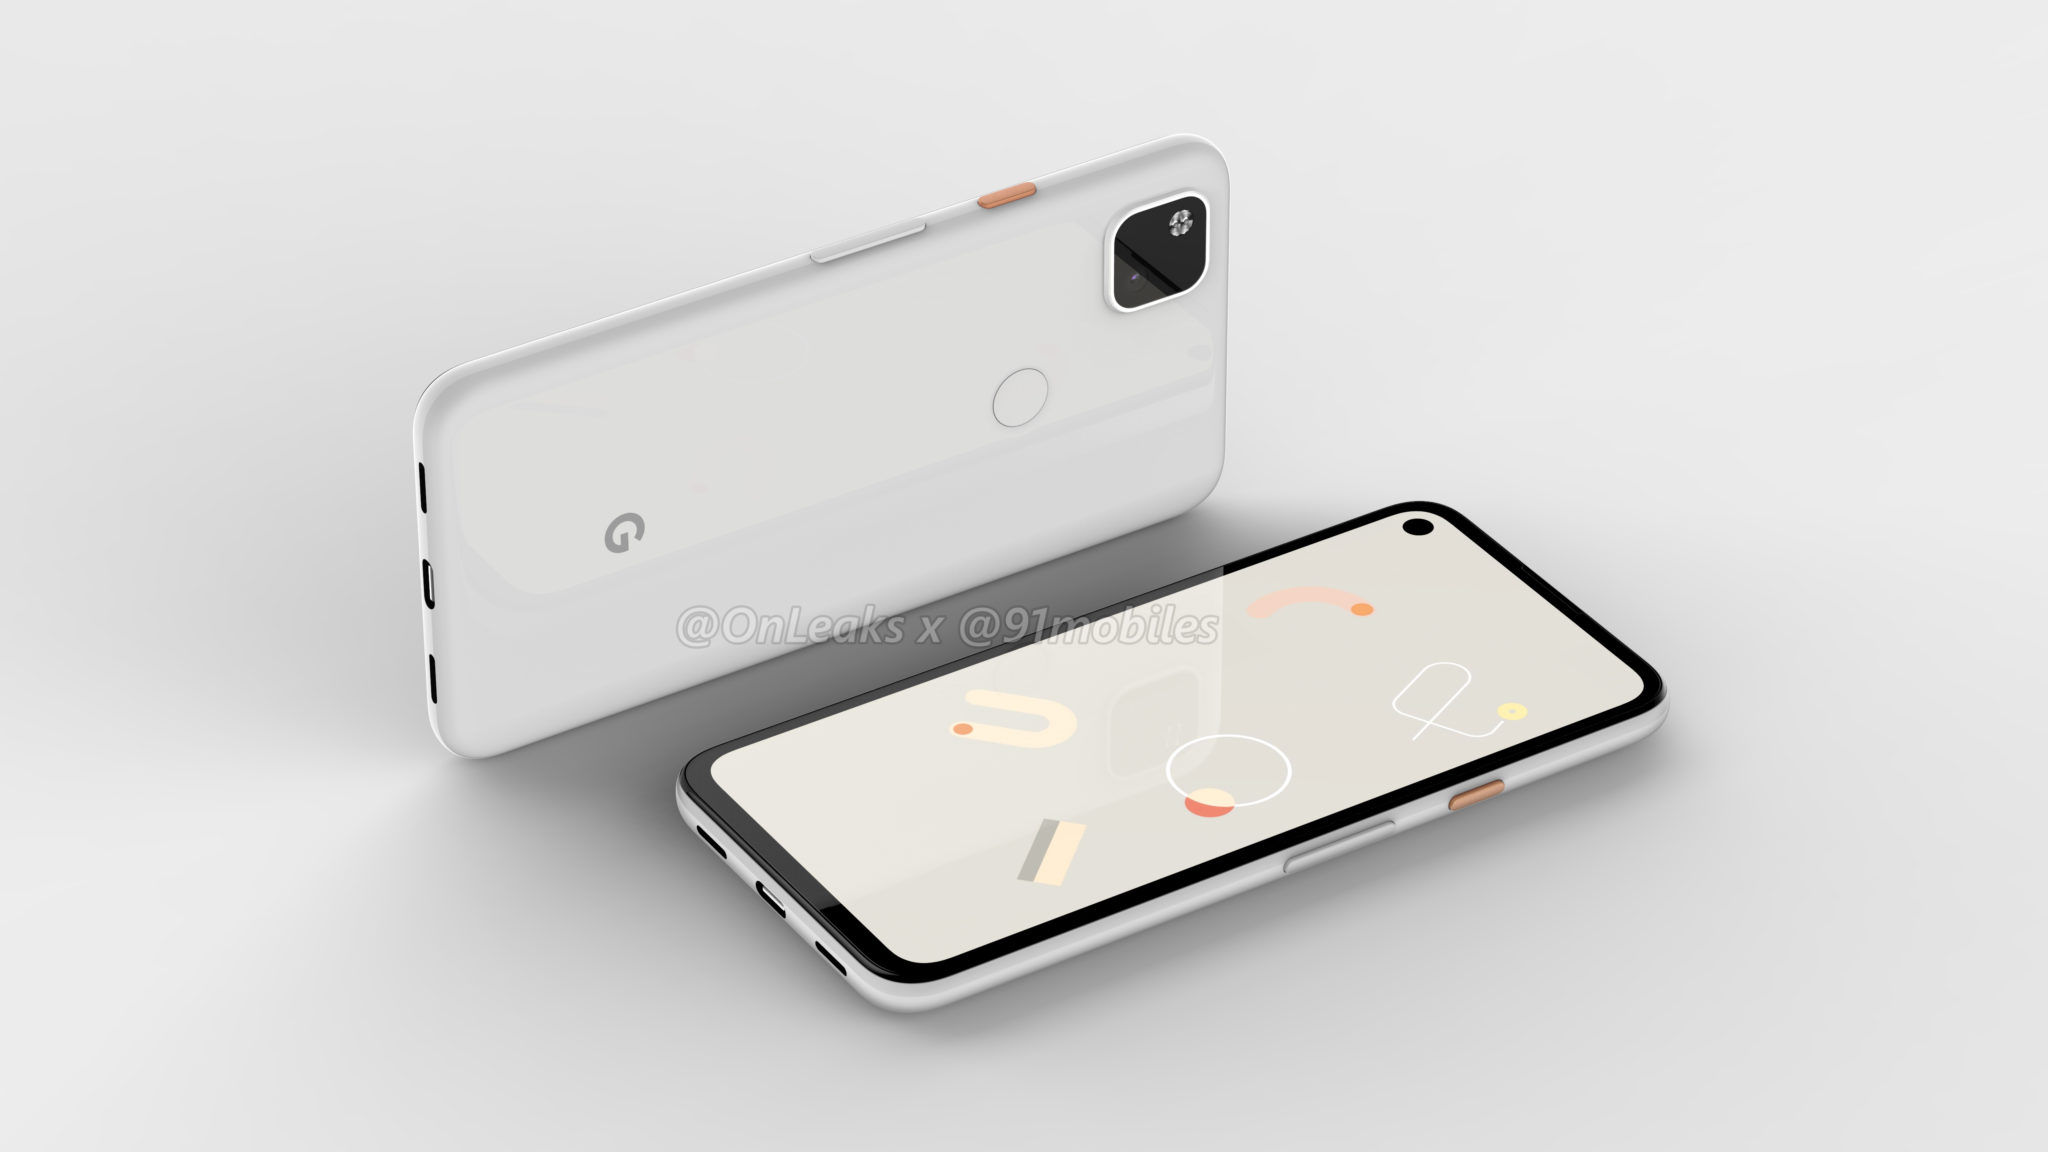 Google Pixel 4a codename revealed, to be powered by Snapdragon 730 SoC